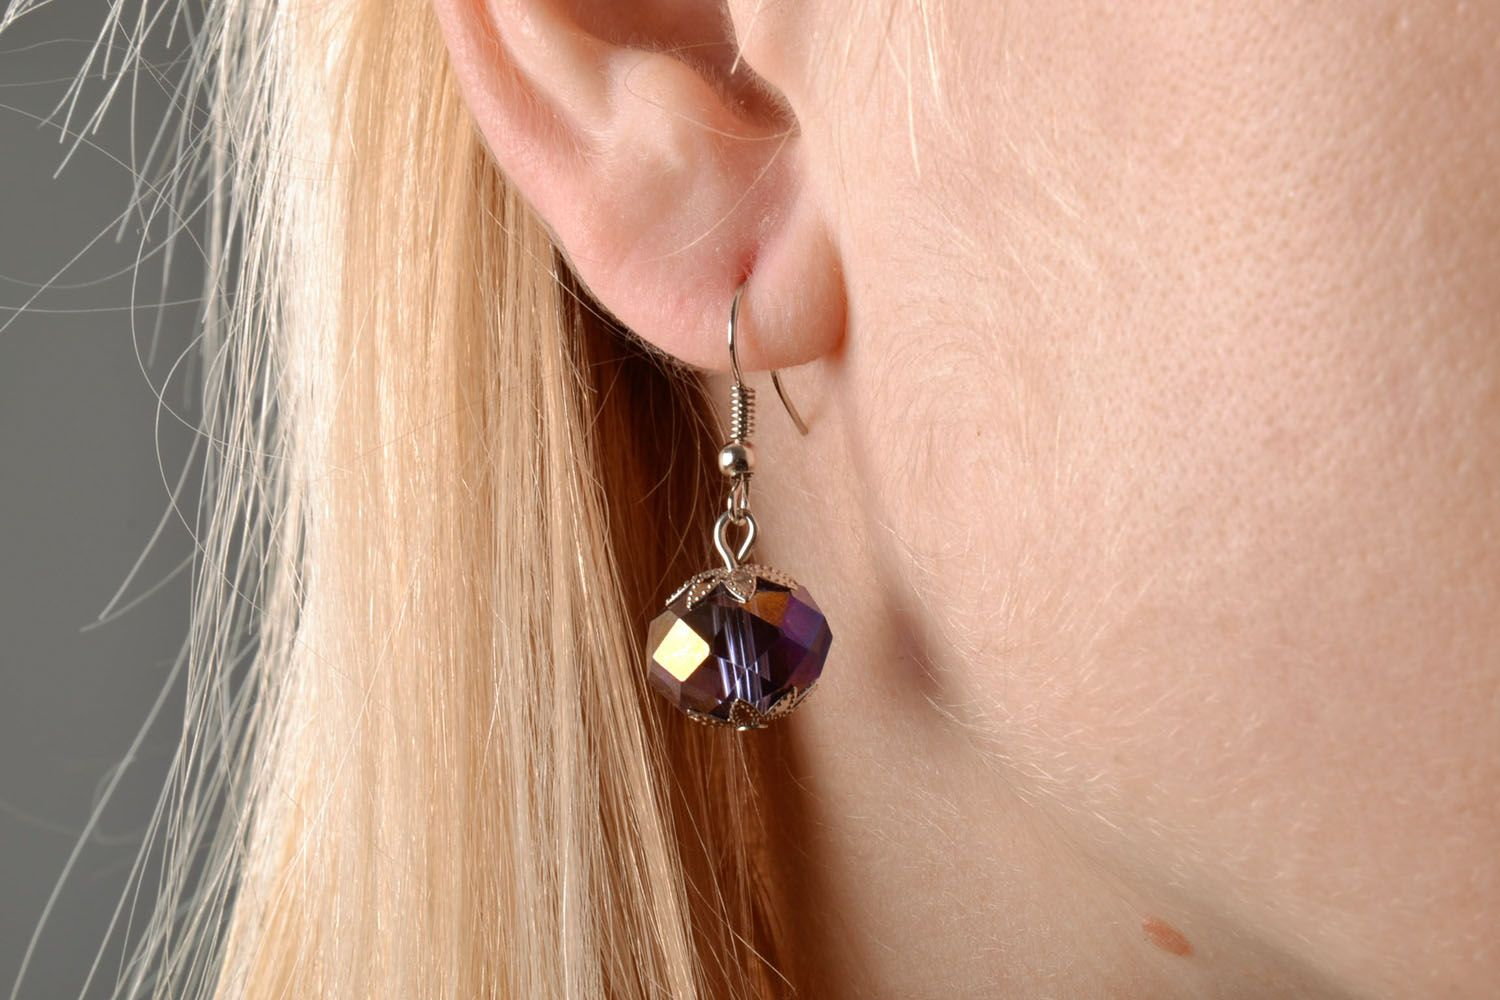 Earrings made of beads photo 5